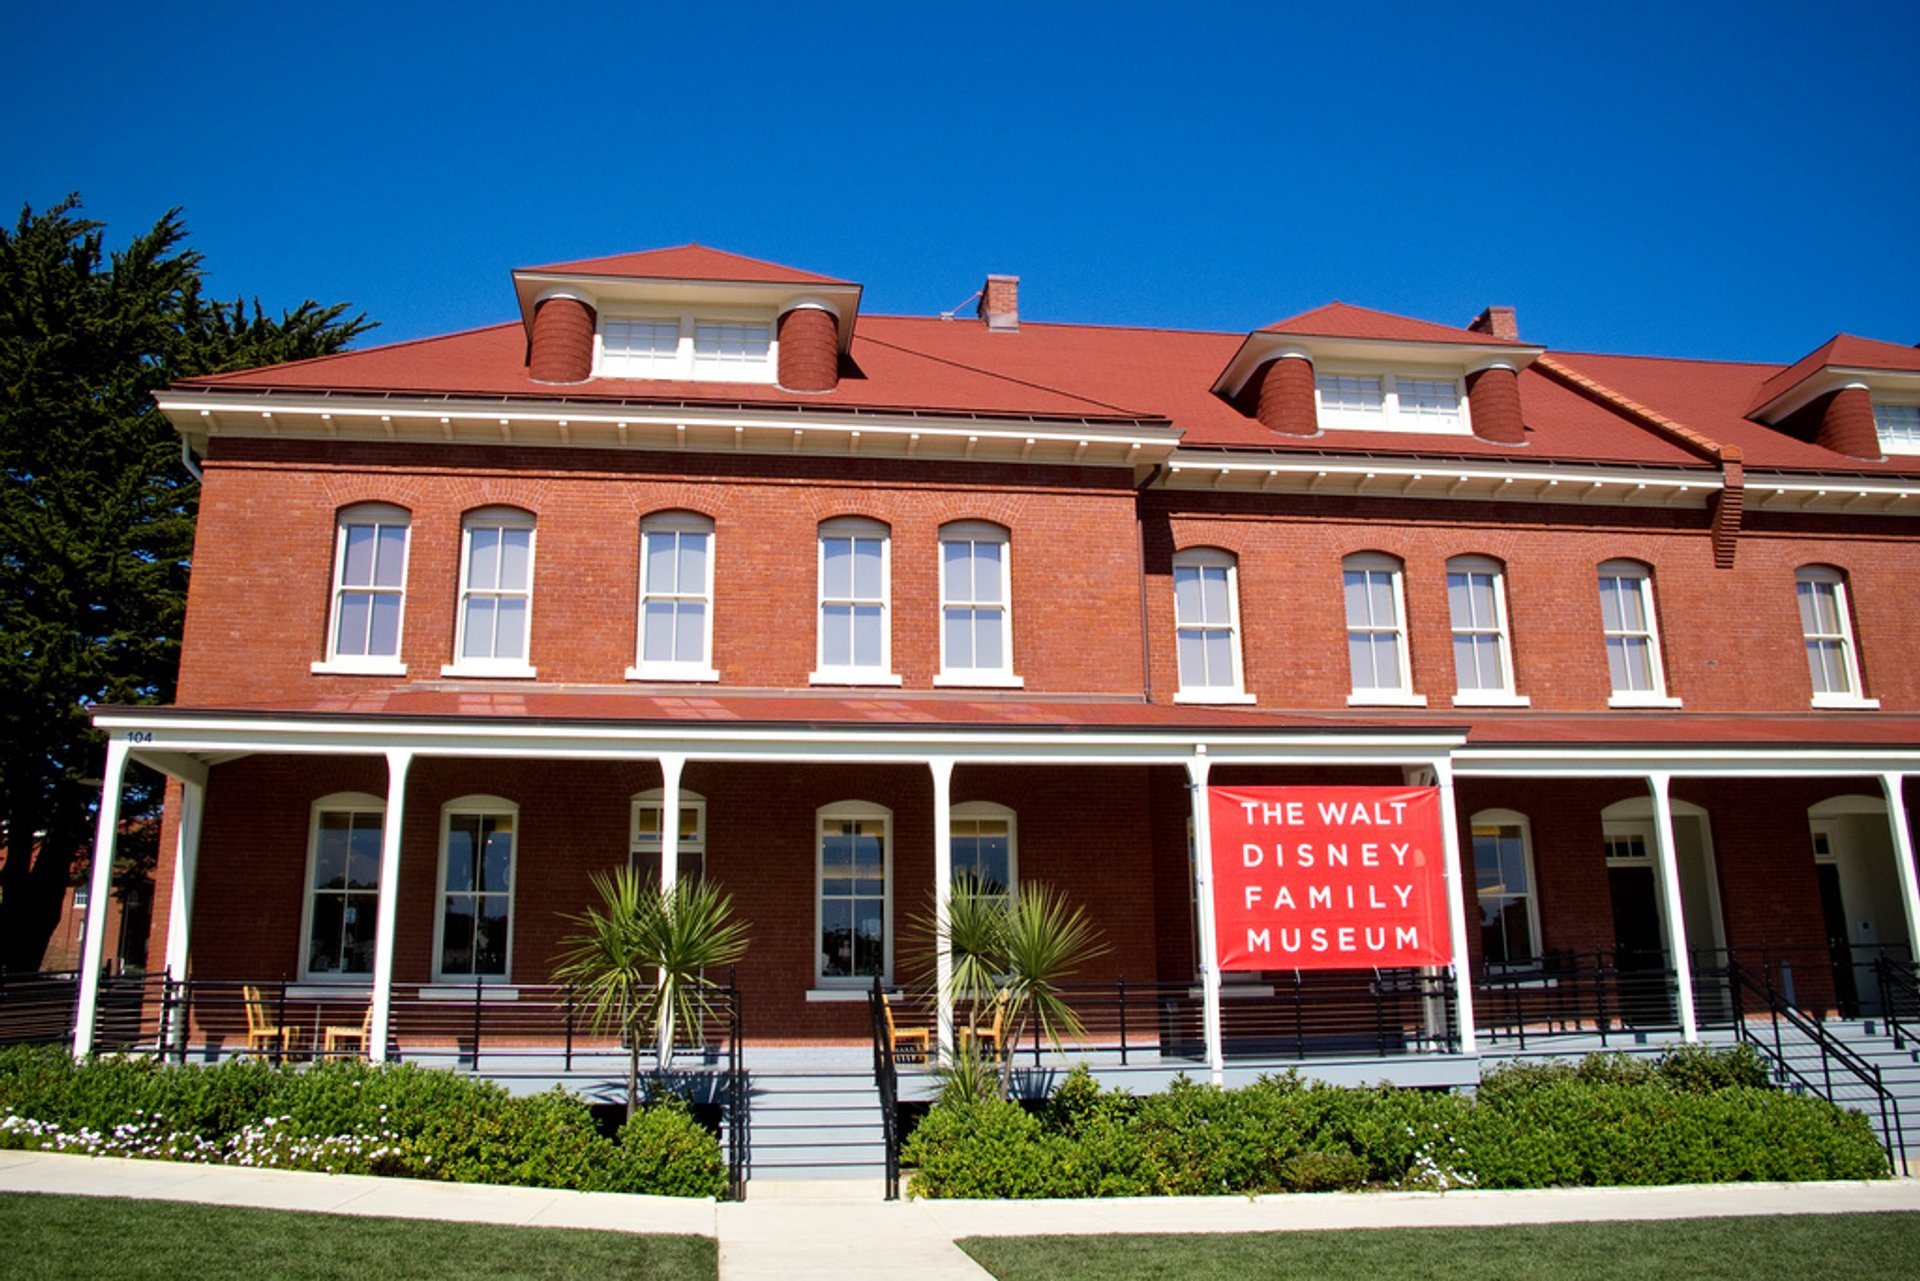 Walt Disney Family Museum Free Day in San Francisco 2019 - Best Time